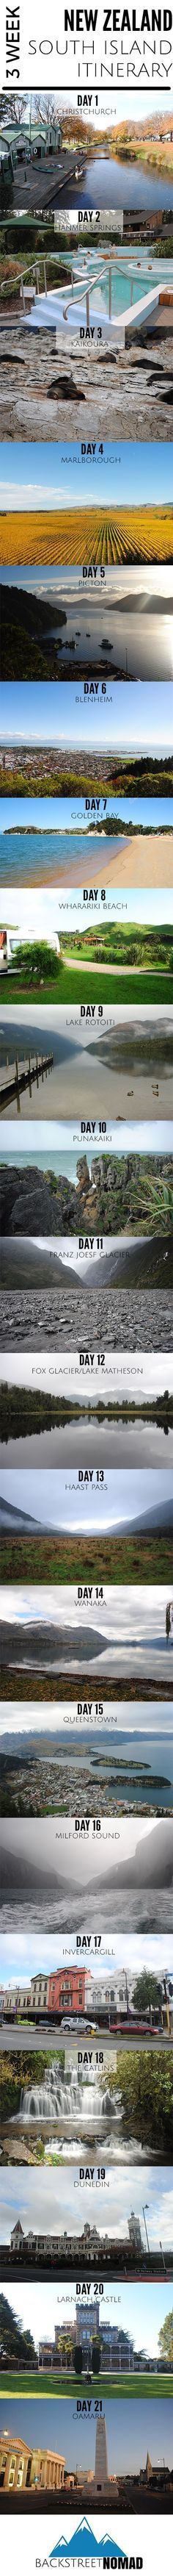 3 week New Zealand south island itinerary infographic. Click to see the itinerary in full detail.